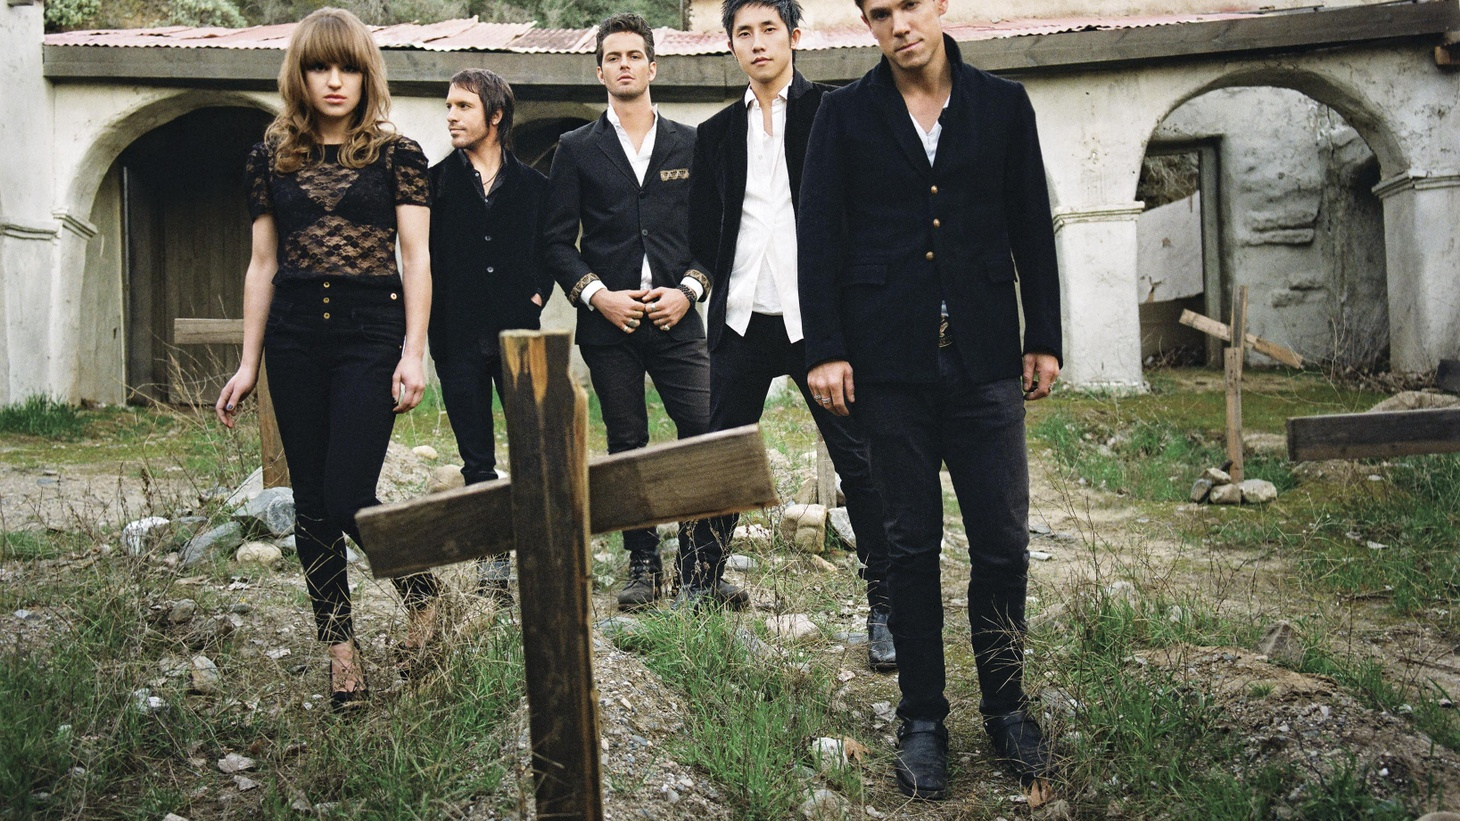 LA, home to many terrific bands, seems to be having a particular renaissance. One of the young bands leading the charge is Los Feliz-based The Airborne Toxic Event.